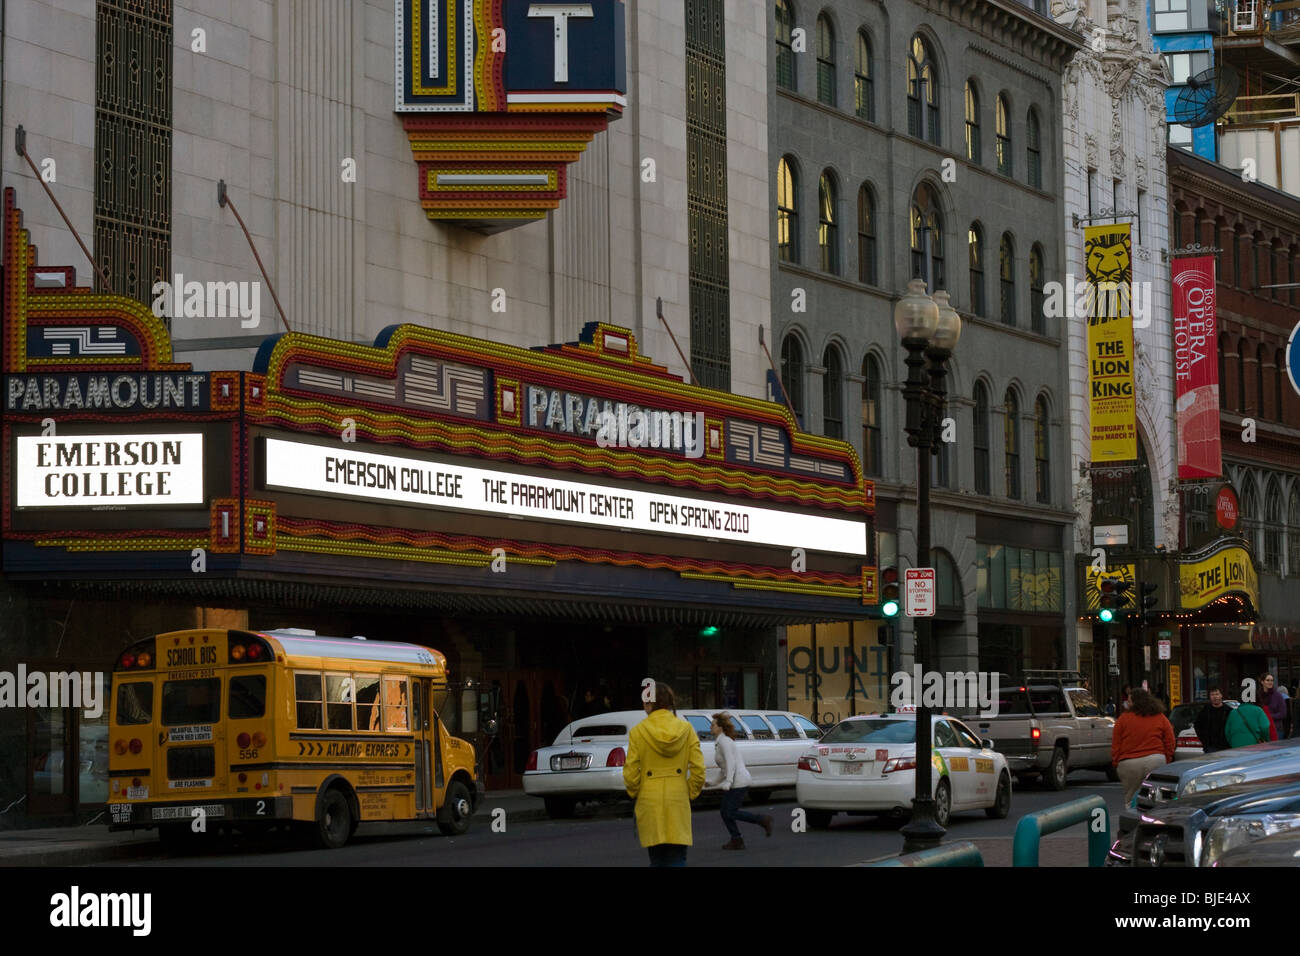 Boston's Theater District.  Washington Street looking East at Emerson College's Paramount Production Center. - Stock Image